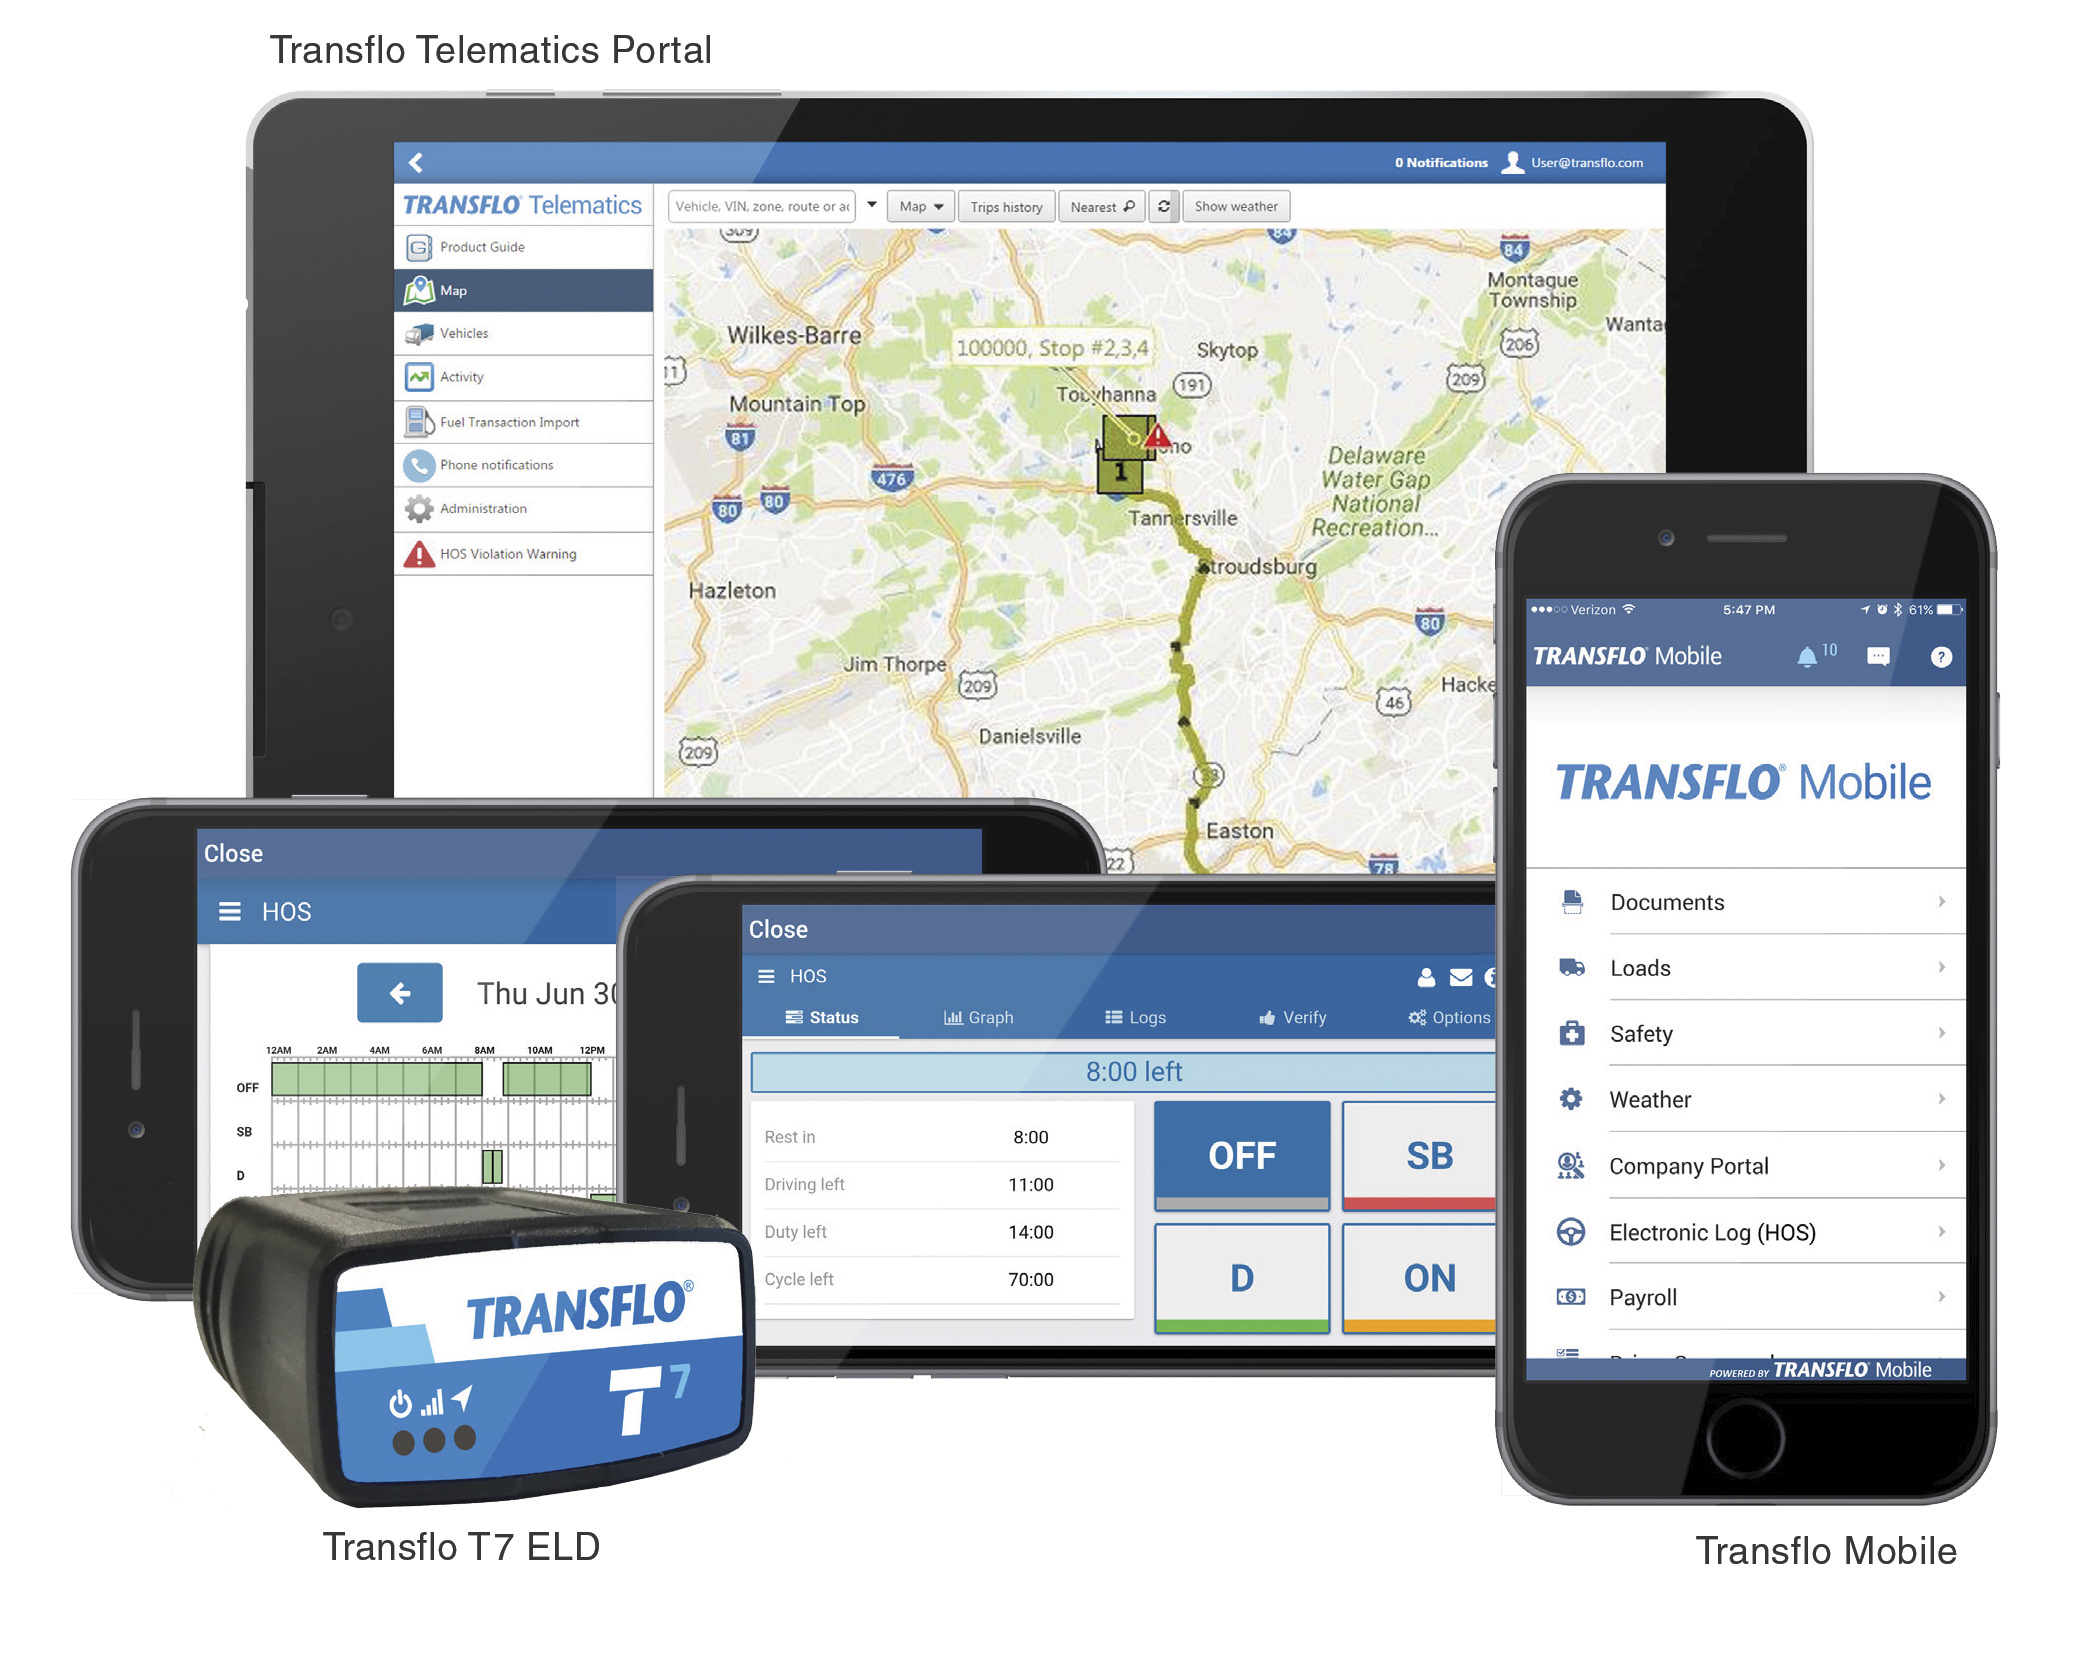 Transflo Telematics in partnership with Geotab. (Photo: Business Wire)